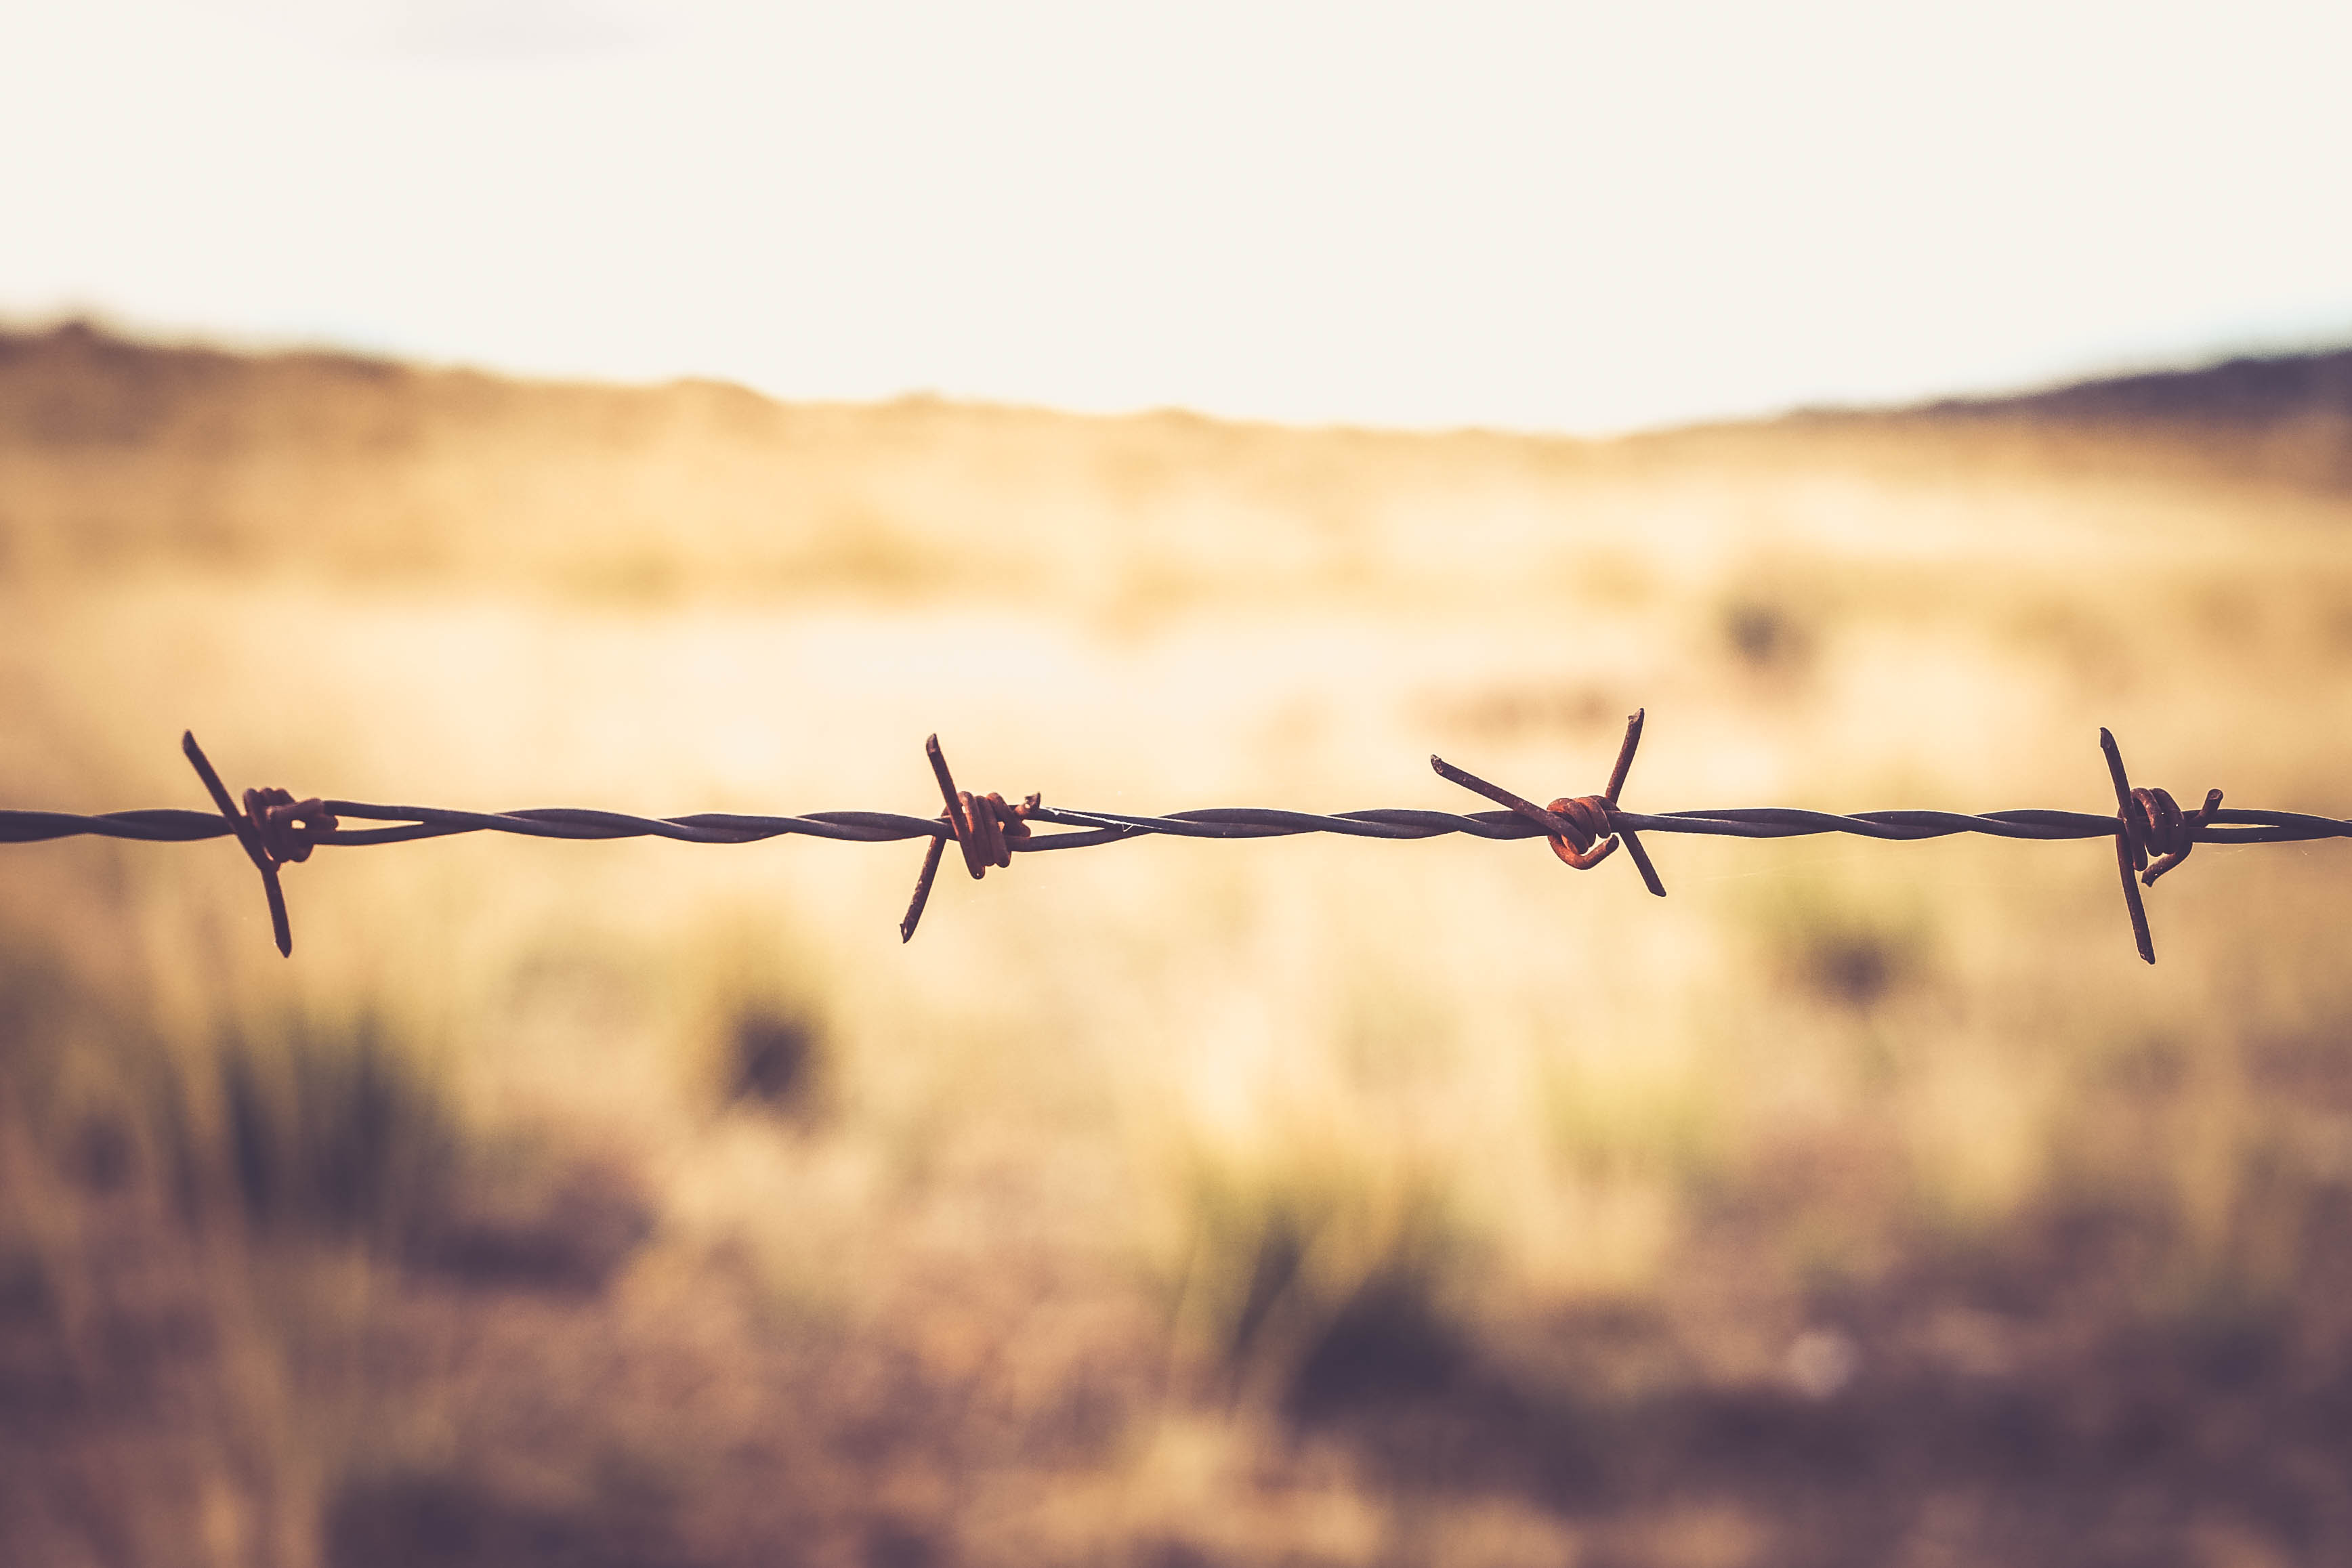 62915 download wallpaper Macro, Barbed, Spiny, Thorns, Spikes, Wire, Barbed Wire screensavers and pictures for free